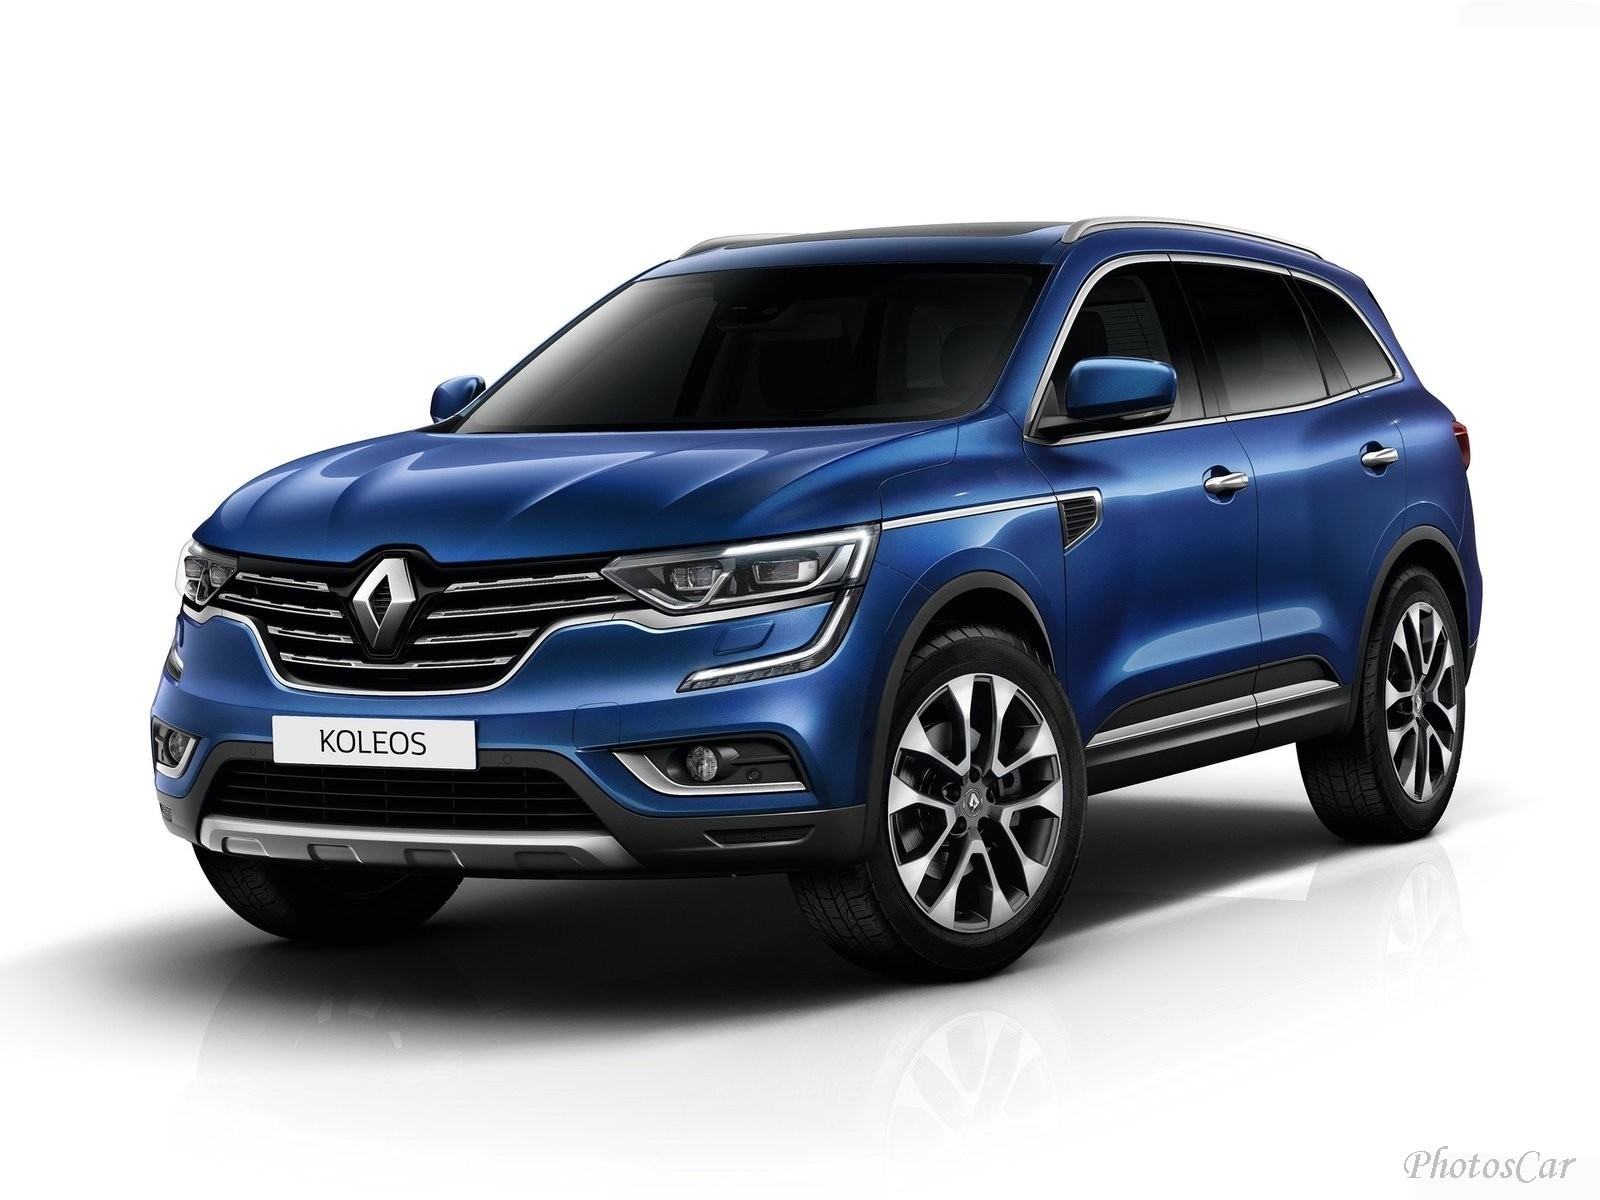 renault koleos 2017 vous plonge dans une atmosph re raffin e photos. Black Bedroom Furniture Sets. Home Design Ideas